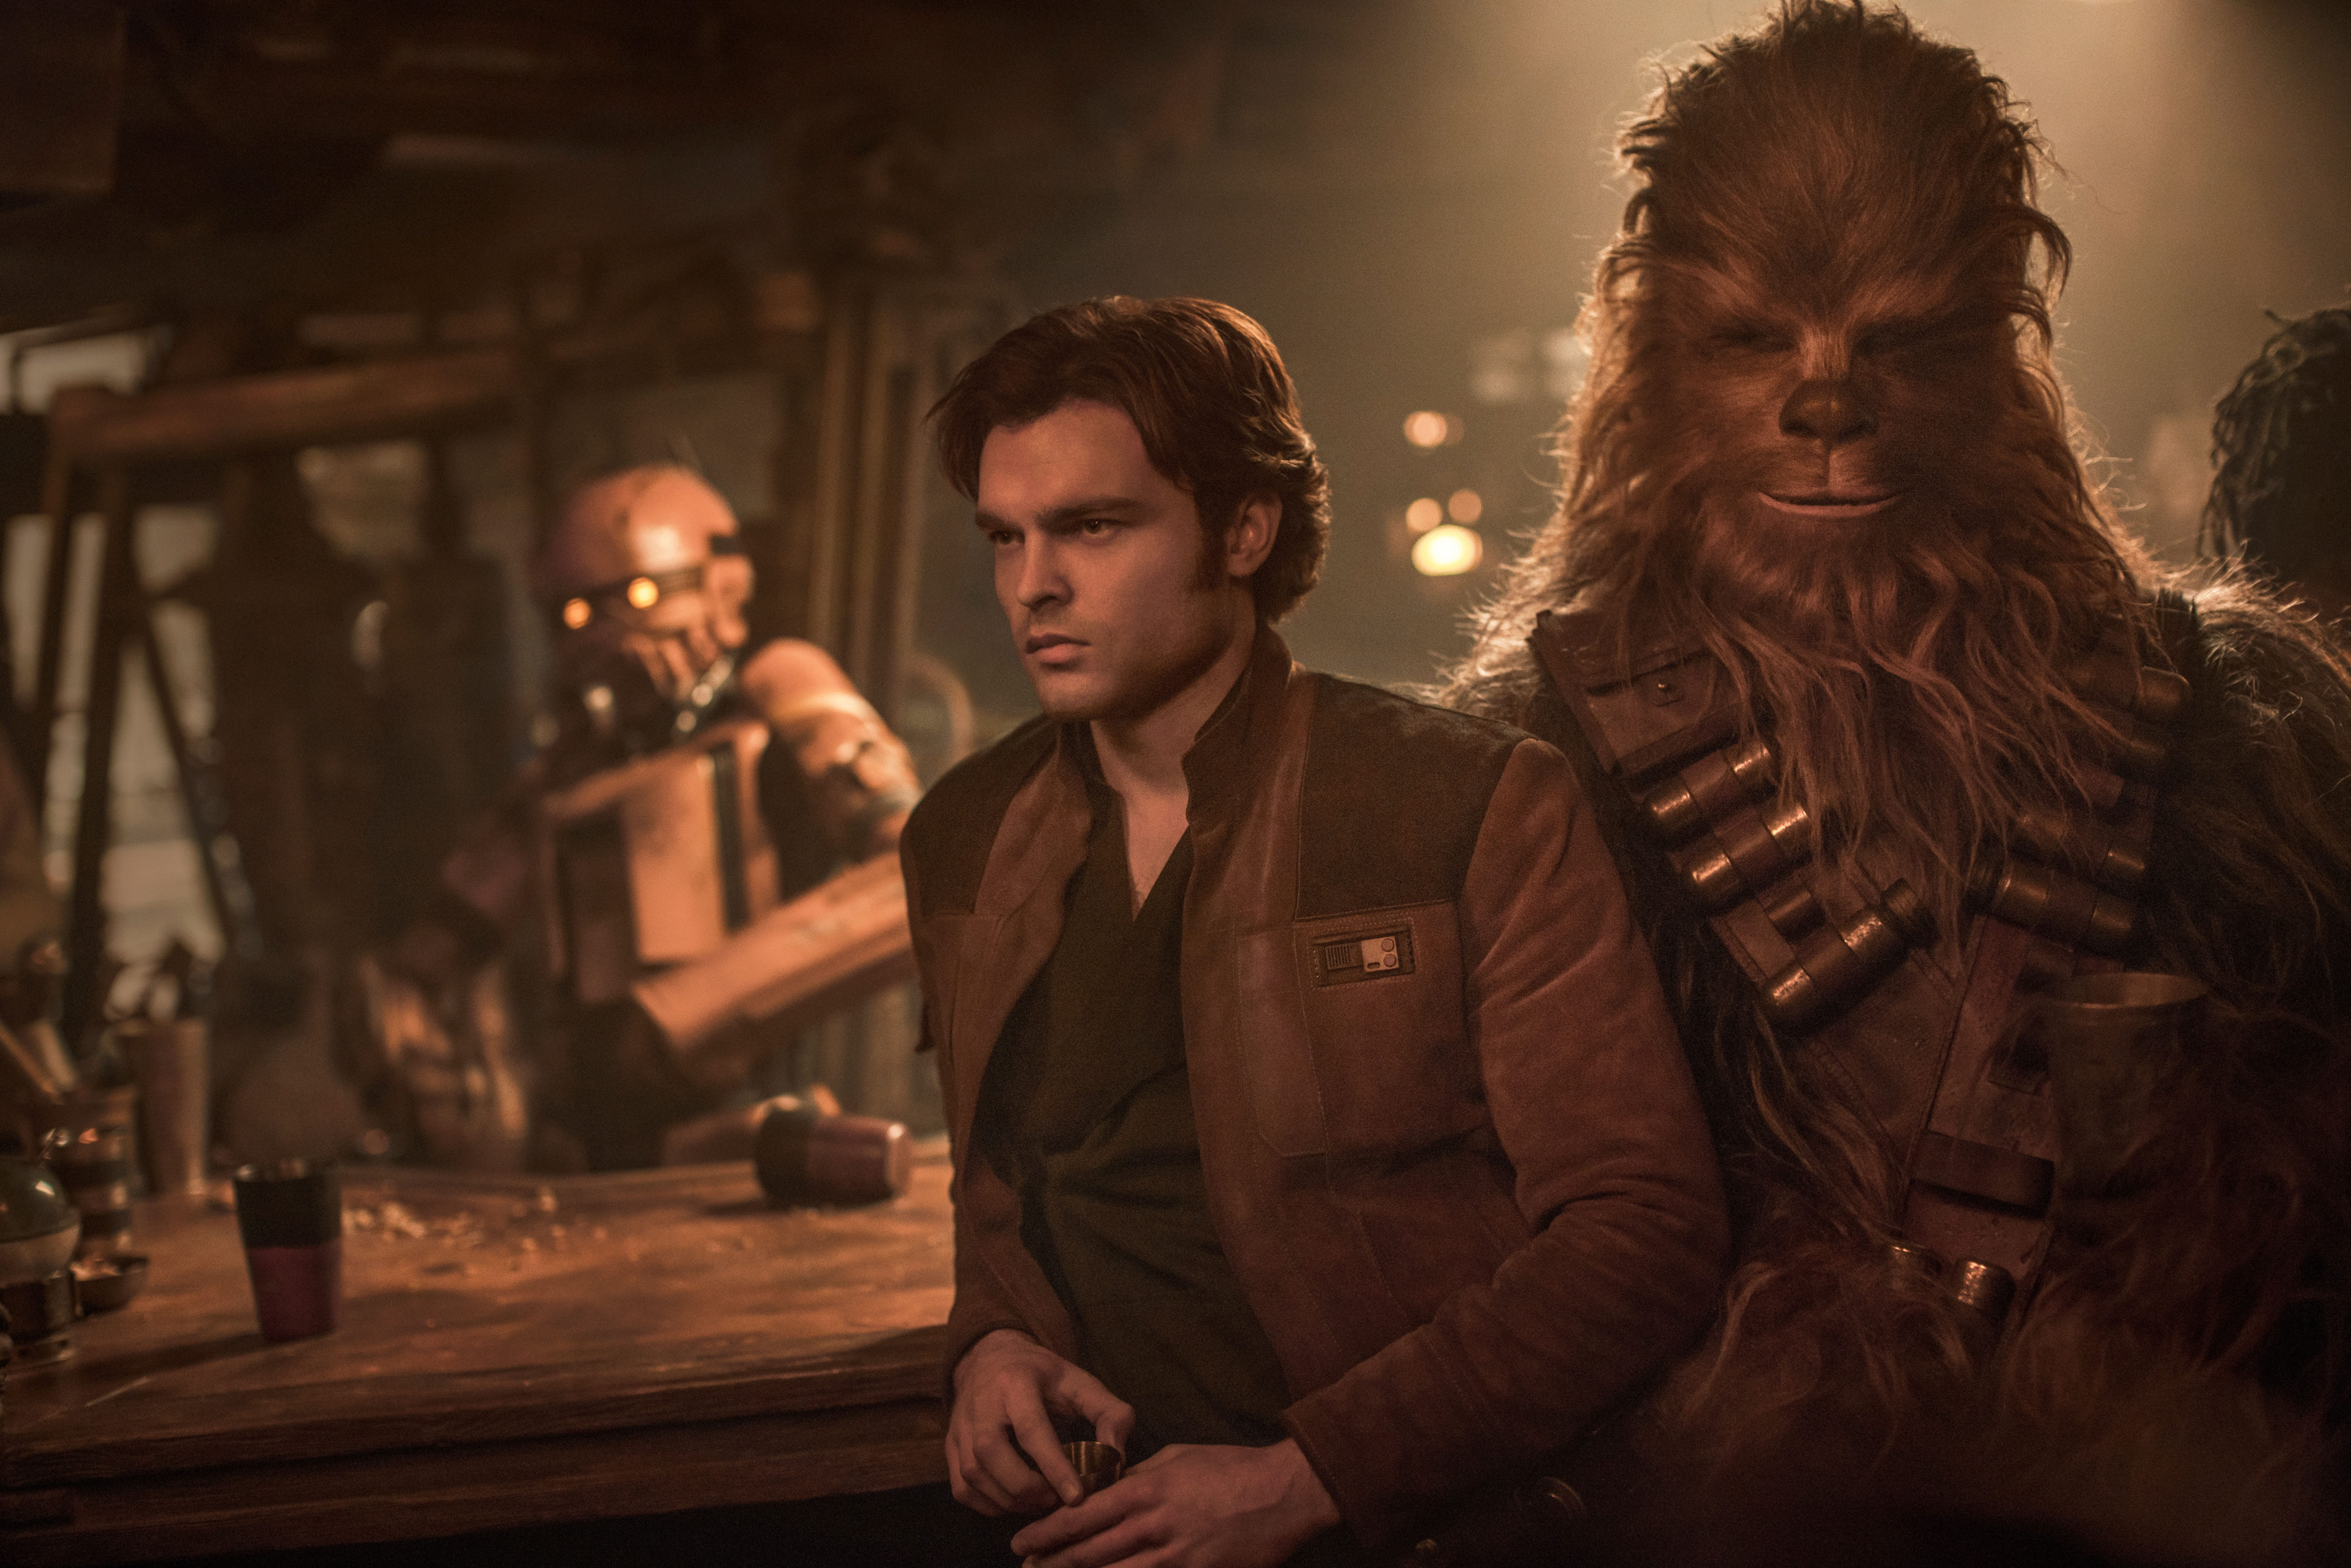 Alden Ehrenreich is Han Solo and Joonas Suotamo is Chewbacca in SOLO: A STAR WARS STORY. © 2017 Lucasfilm Ltd. & ™, All Rights Reserved..